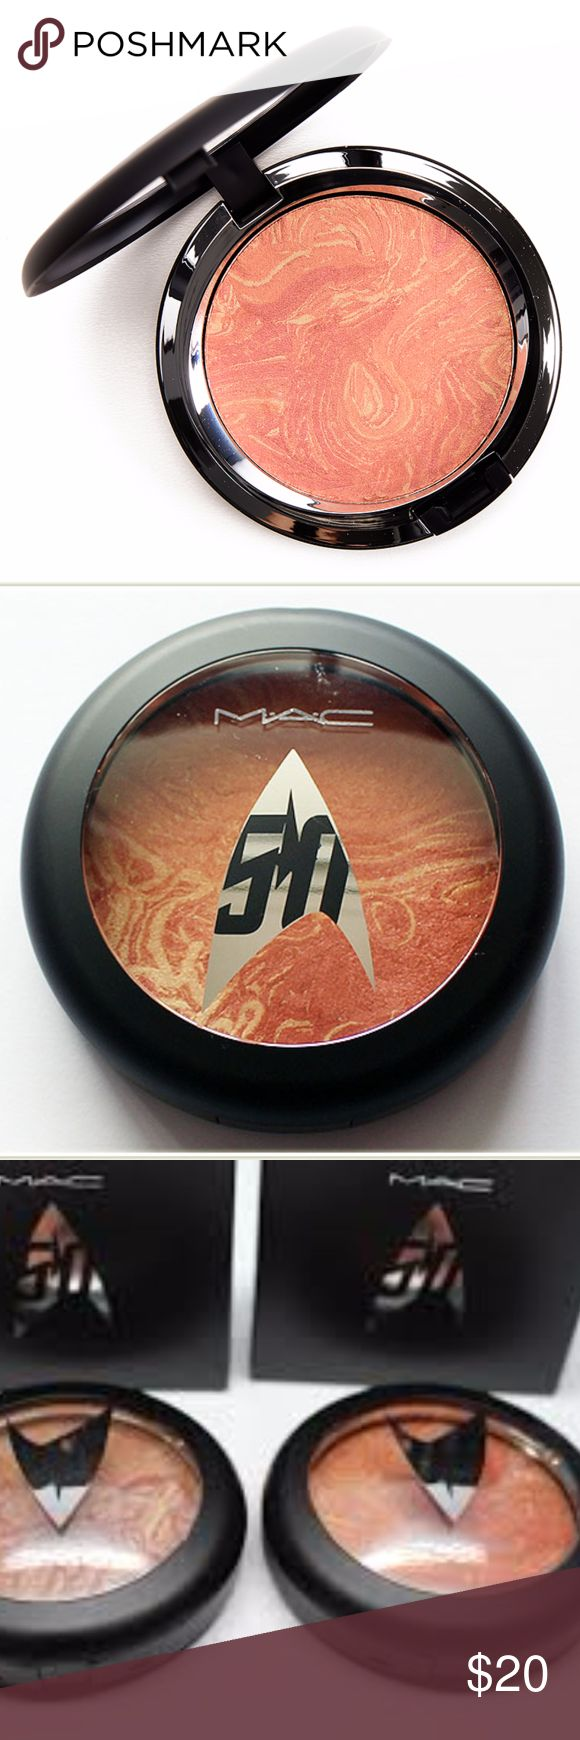 MAC Strange New Worlds Face Powder MAC Strange New Worlds Trip the Light Fantastic Powder ($34.00 for 0.22 oz.) is a medium, orange-copper with warm undertones and a golden shimmer-sheen finish. Brand new, never used or swatched.  Comes in box and still has plastic protective disc. Non-smoking, pet-free home. MAC Cosmetics Makeup Face Powder